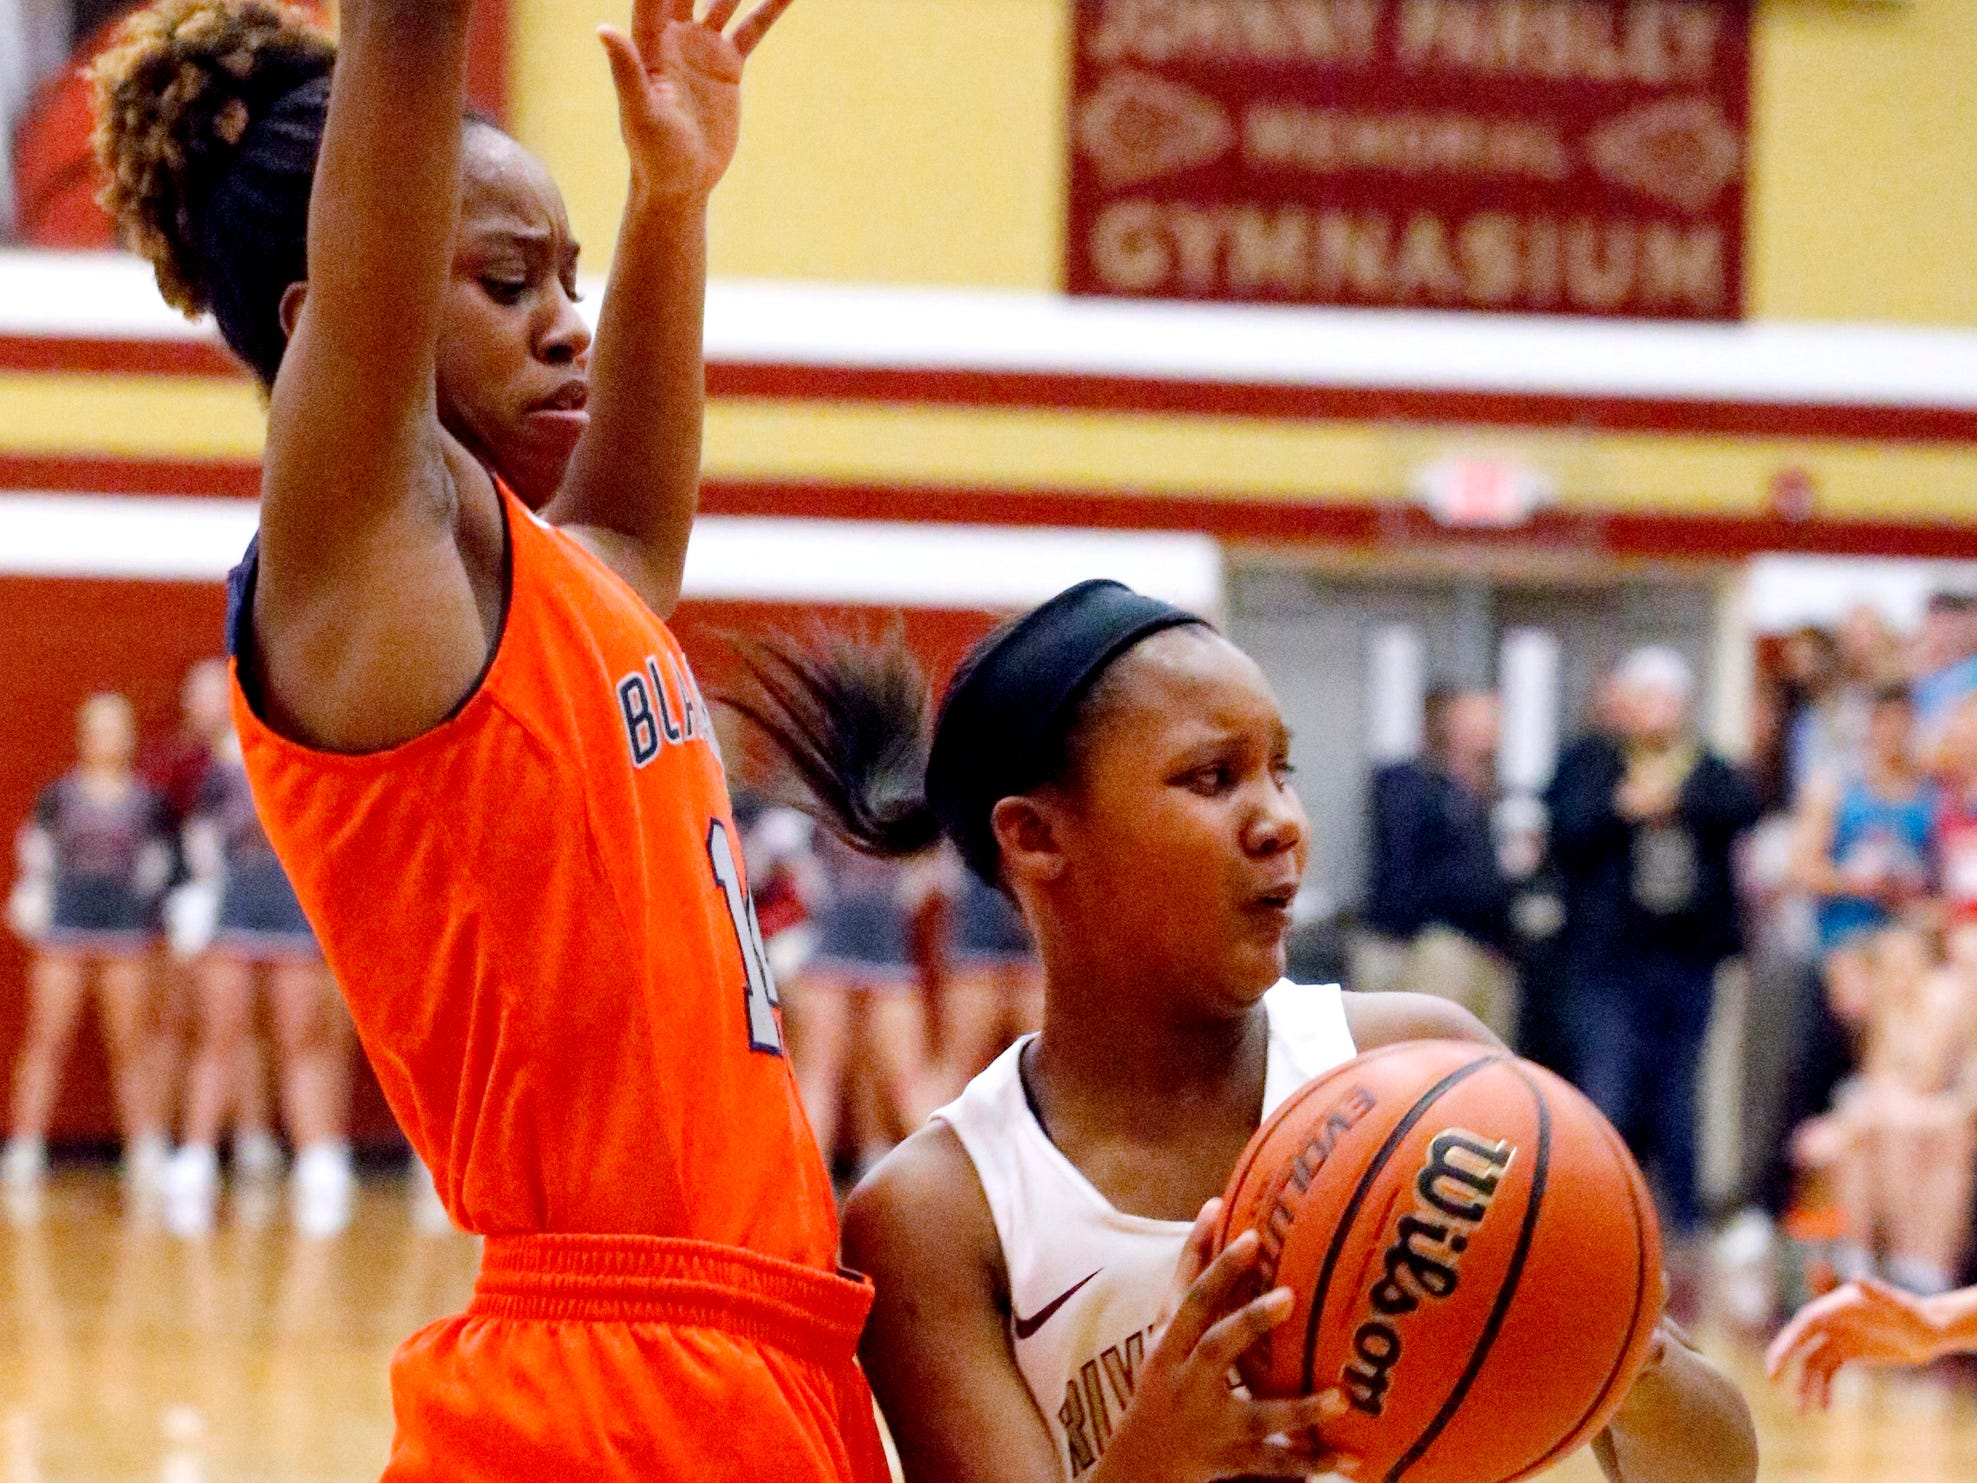 Riverdale's Acacia Hayes (3) looks to pass the ball as Blackman's Joelle Patton (14) guards her on Tuesday Jan. 8, 2019